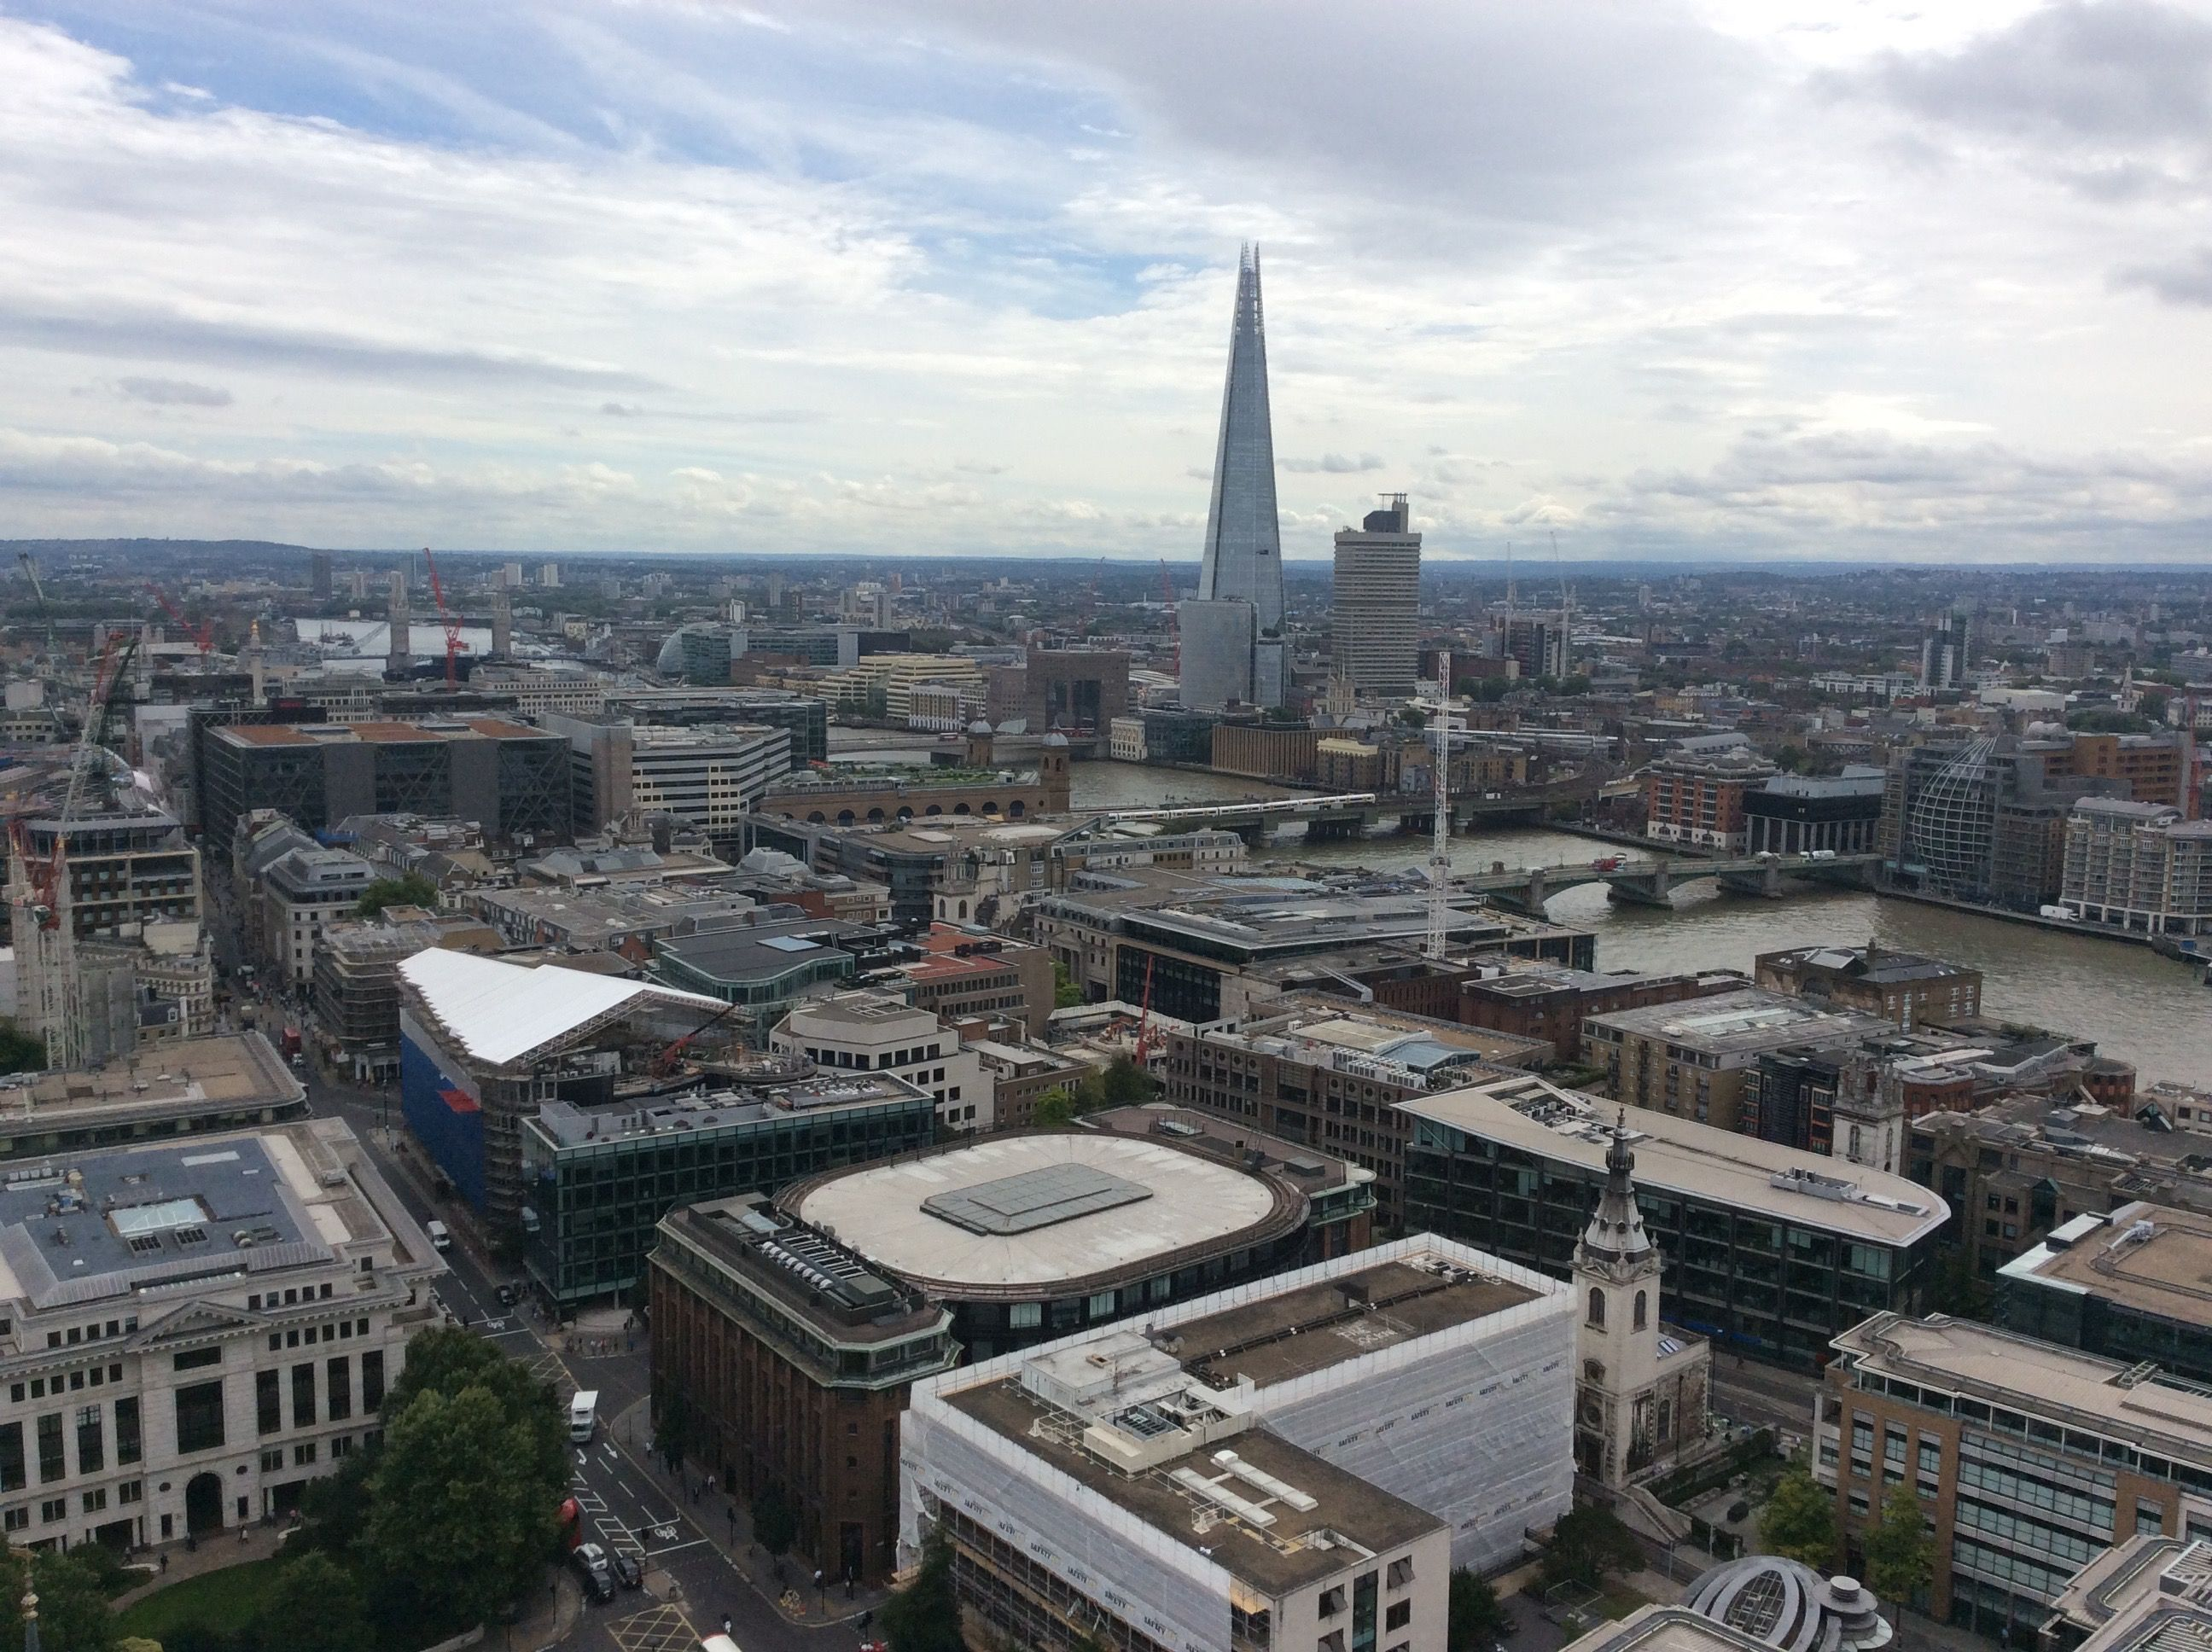 Looking east from St Pauls past The Shard to Tower Bridge and The Tower of London